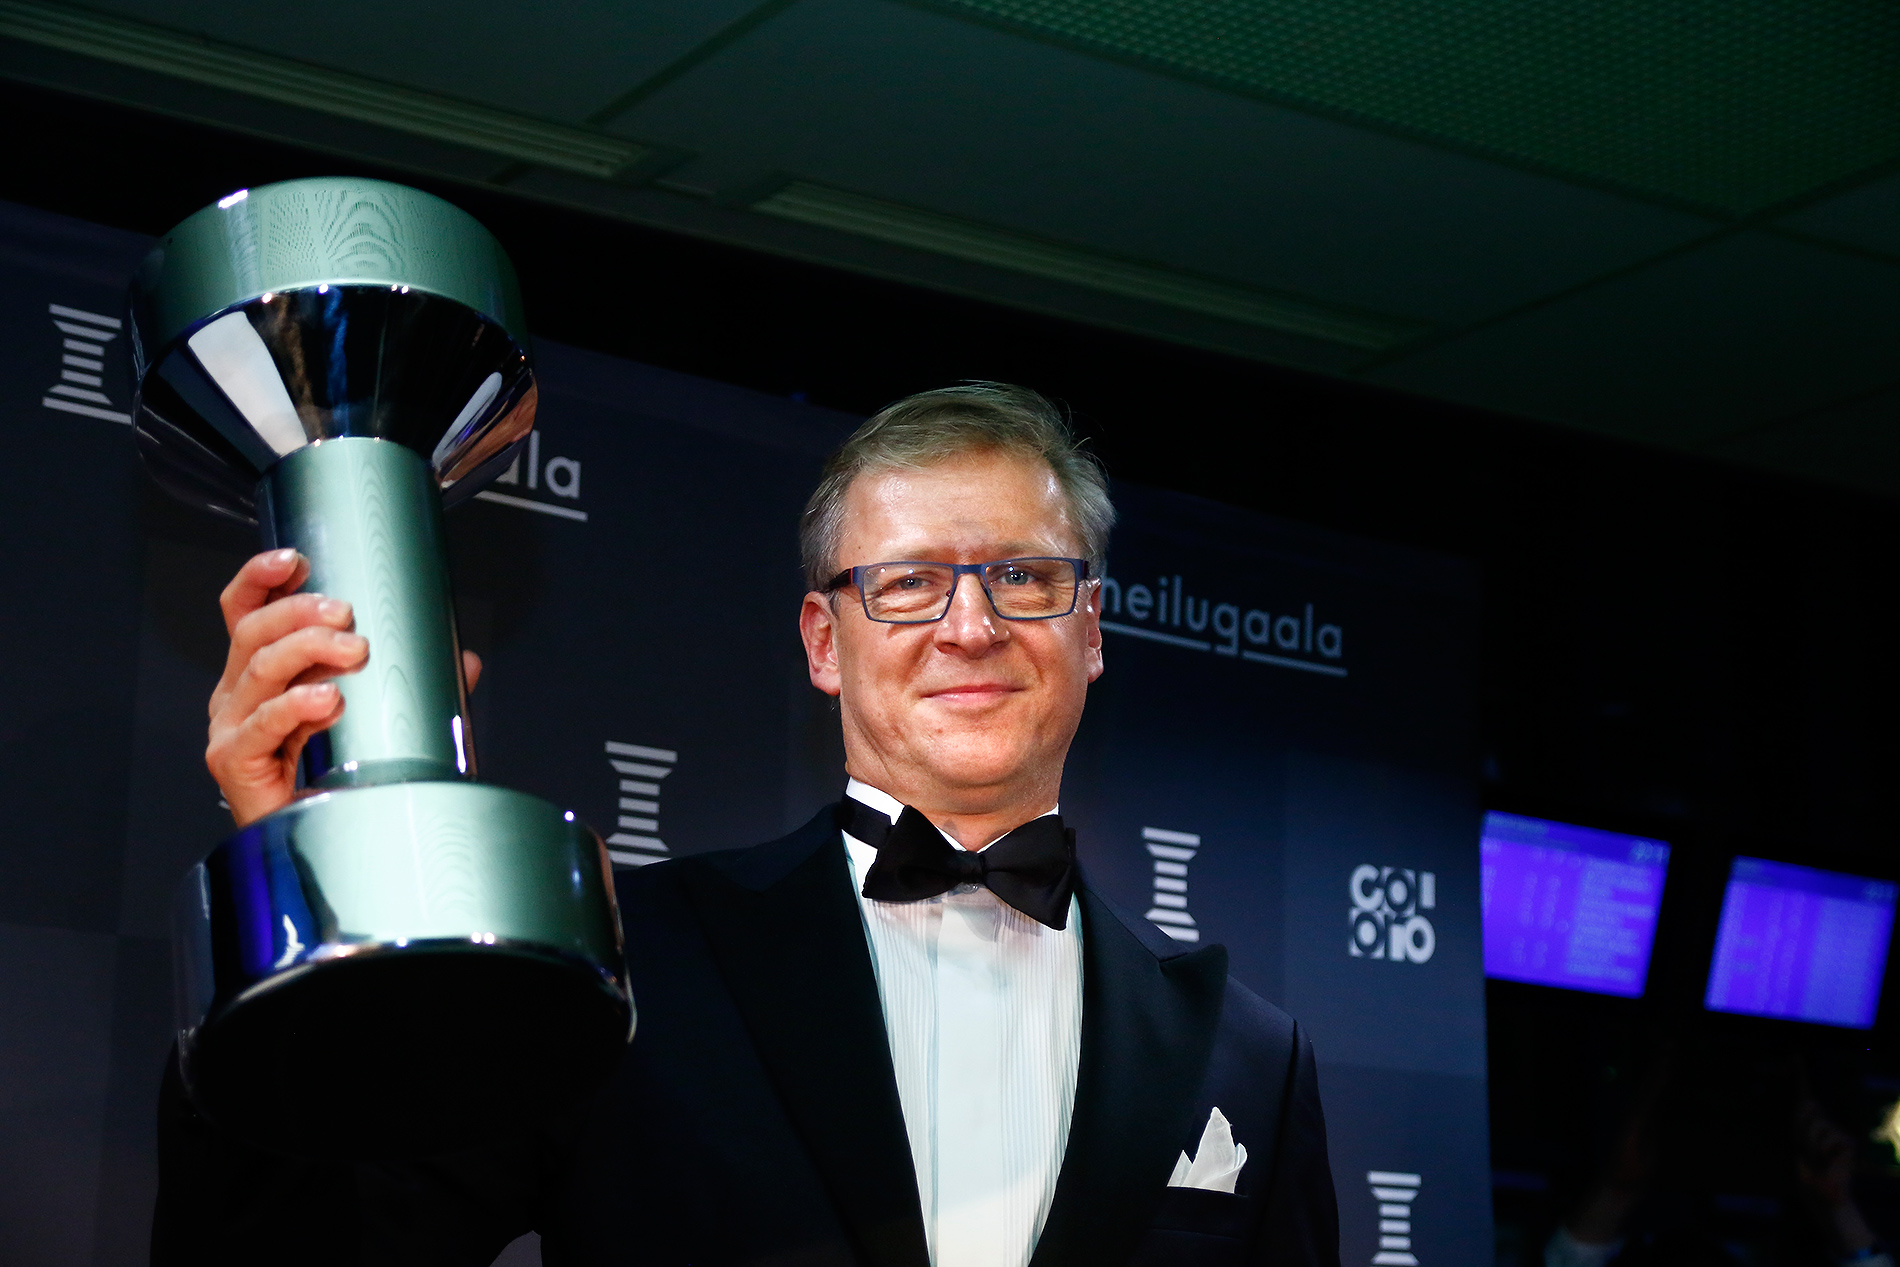 Football coach Markku Kanerva took the Finland national football team, Eagle Owls, to the Euro 2020. He received the Coach of the Year award. Picture: Tony Öhberg for Finland Today